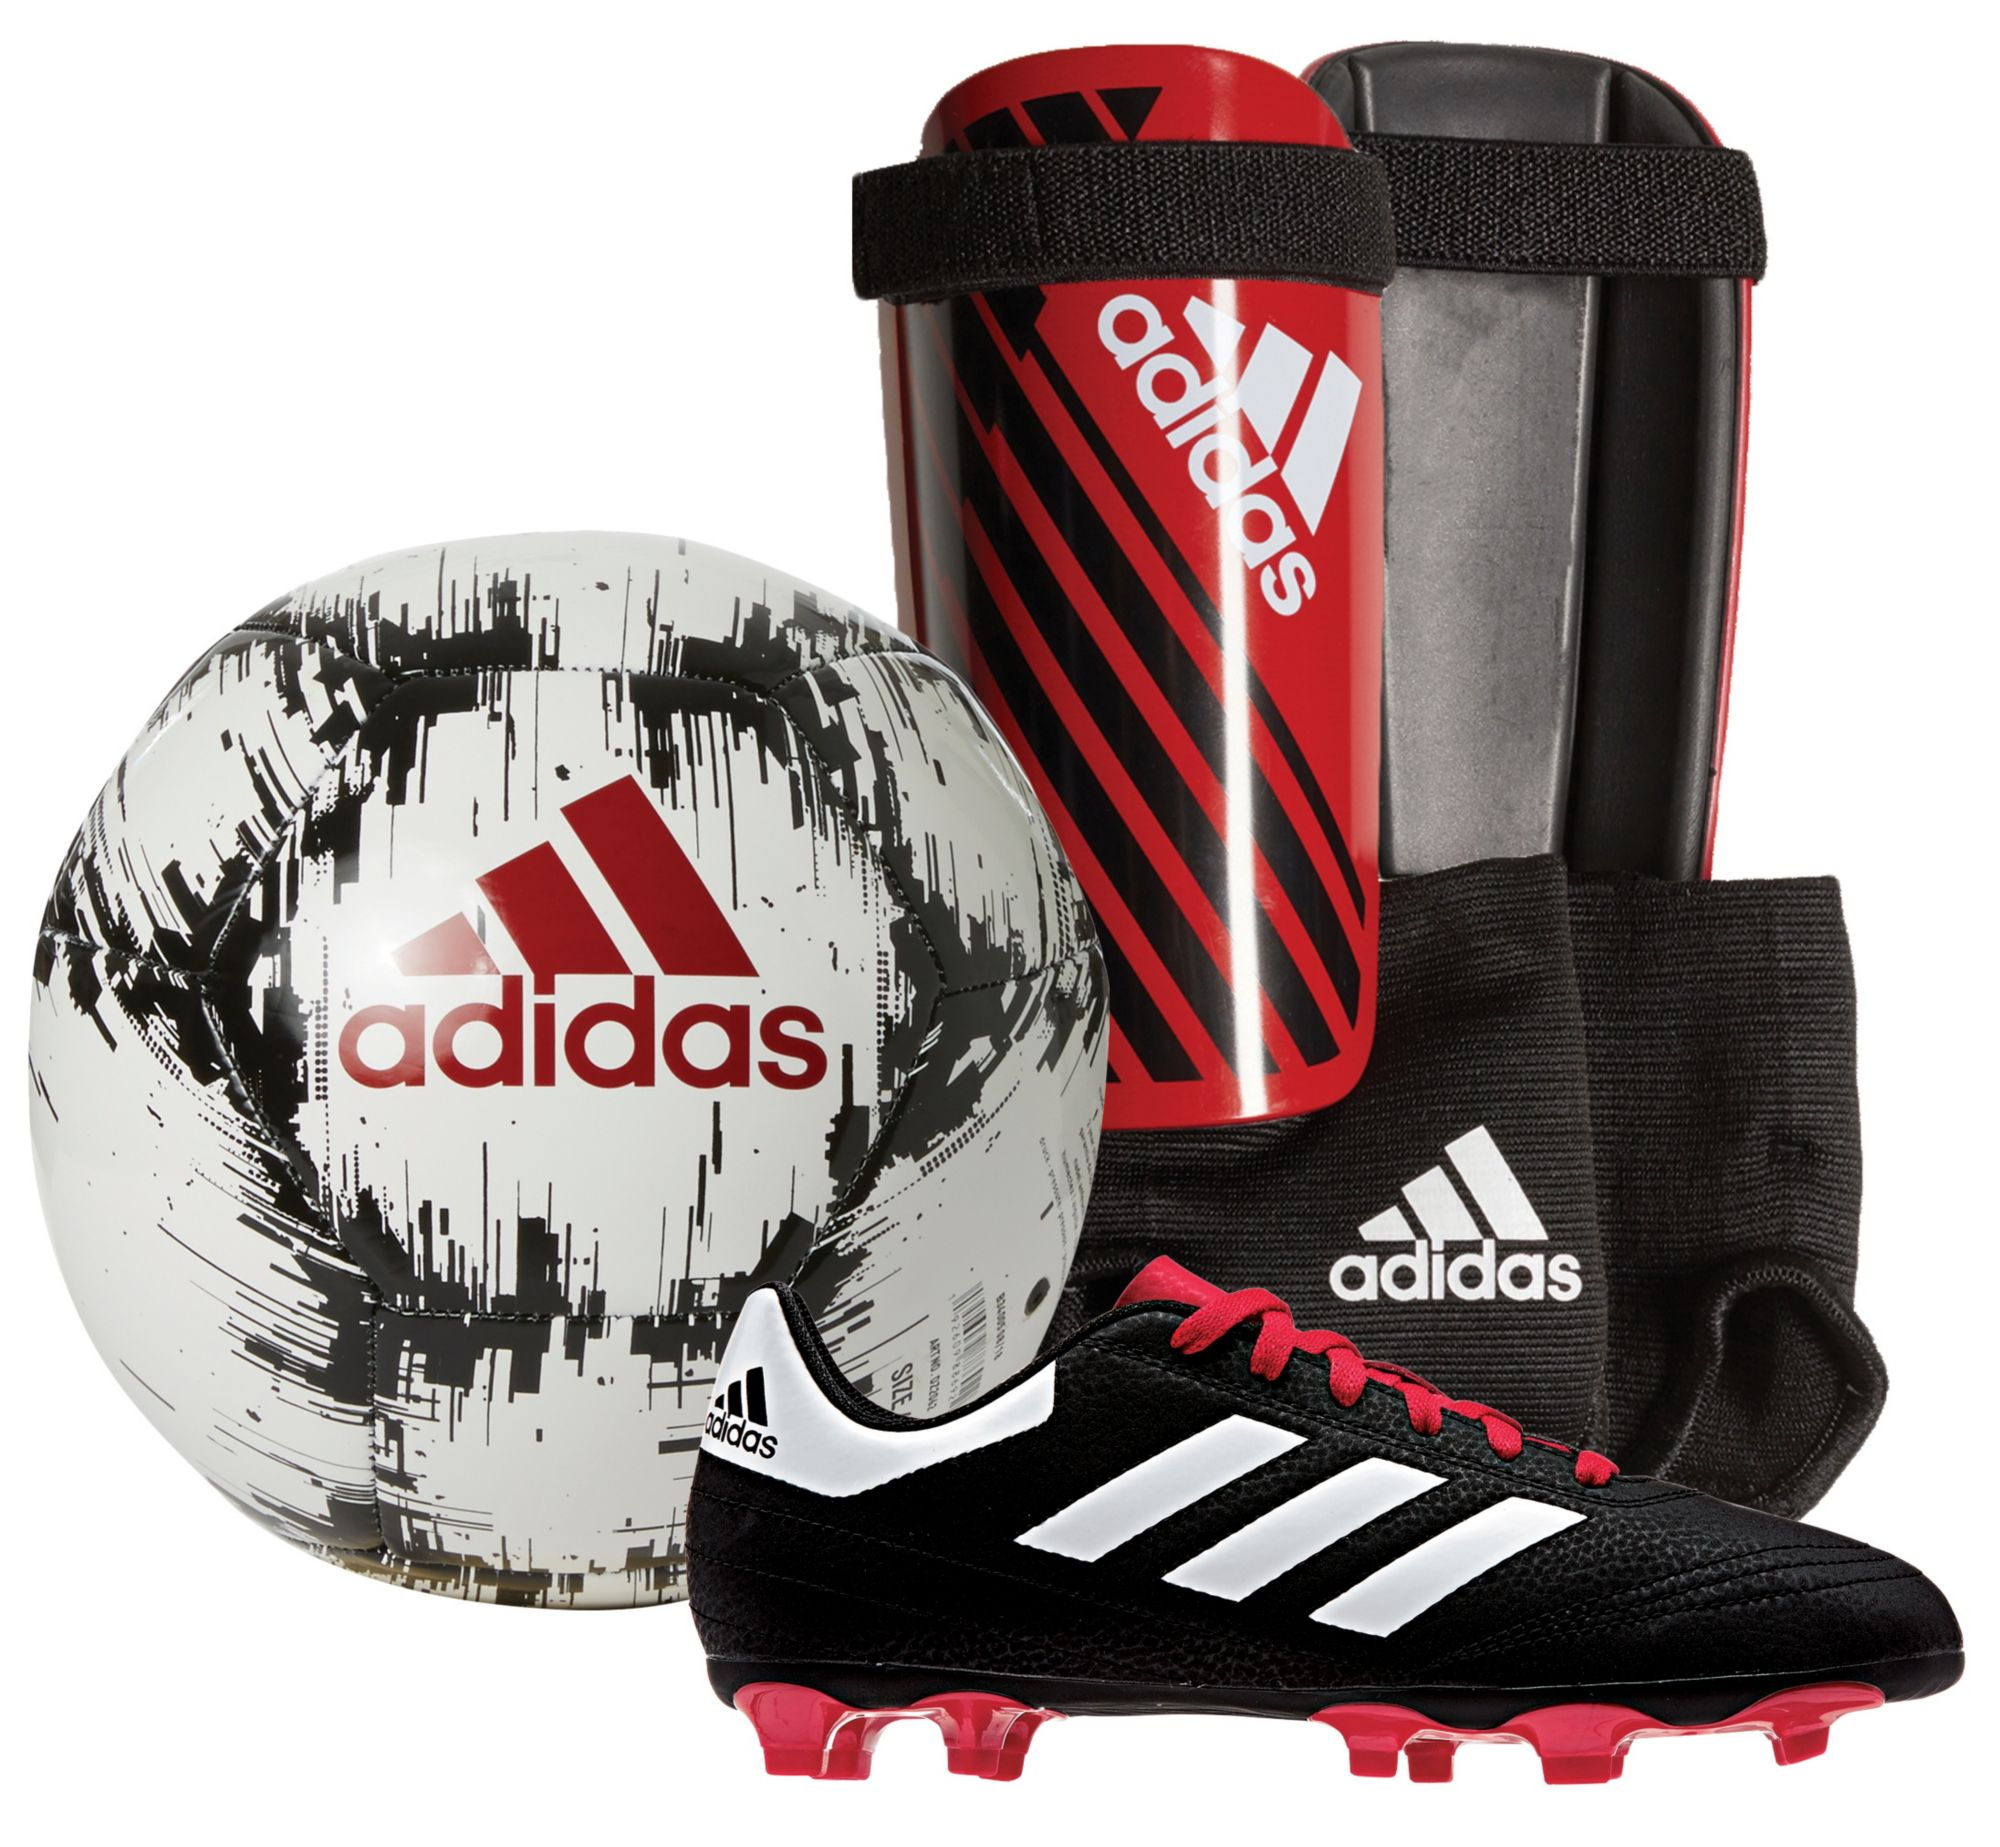 adidas Youth Soccer Starter Kit - Red Black